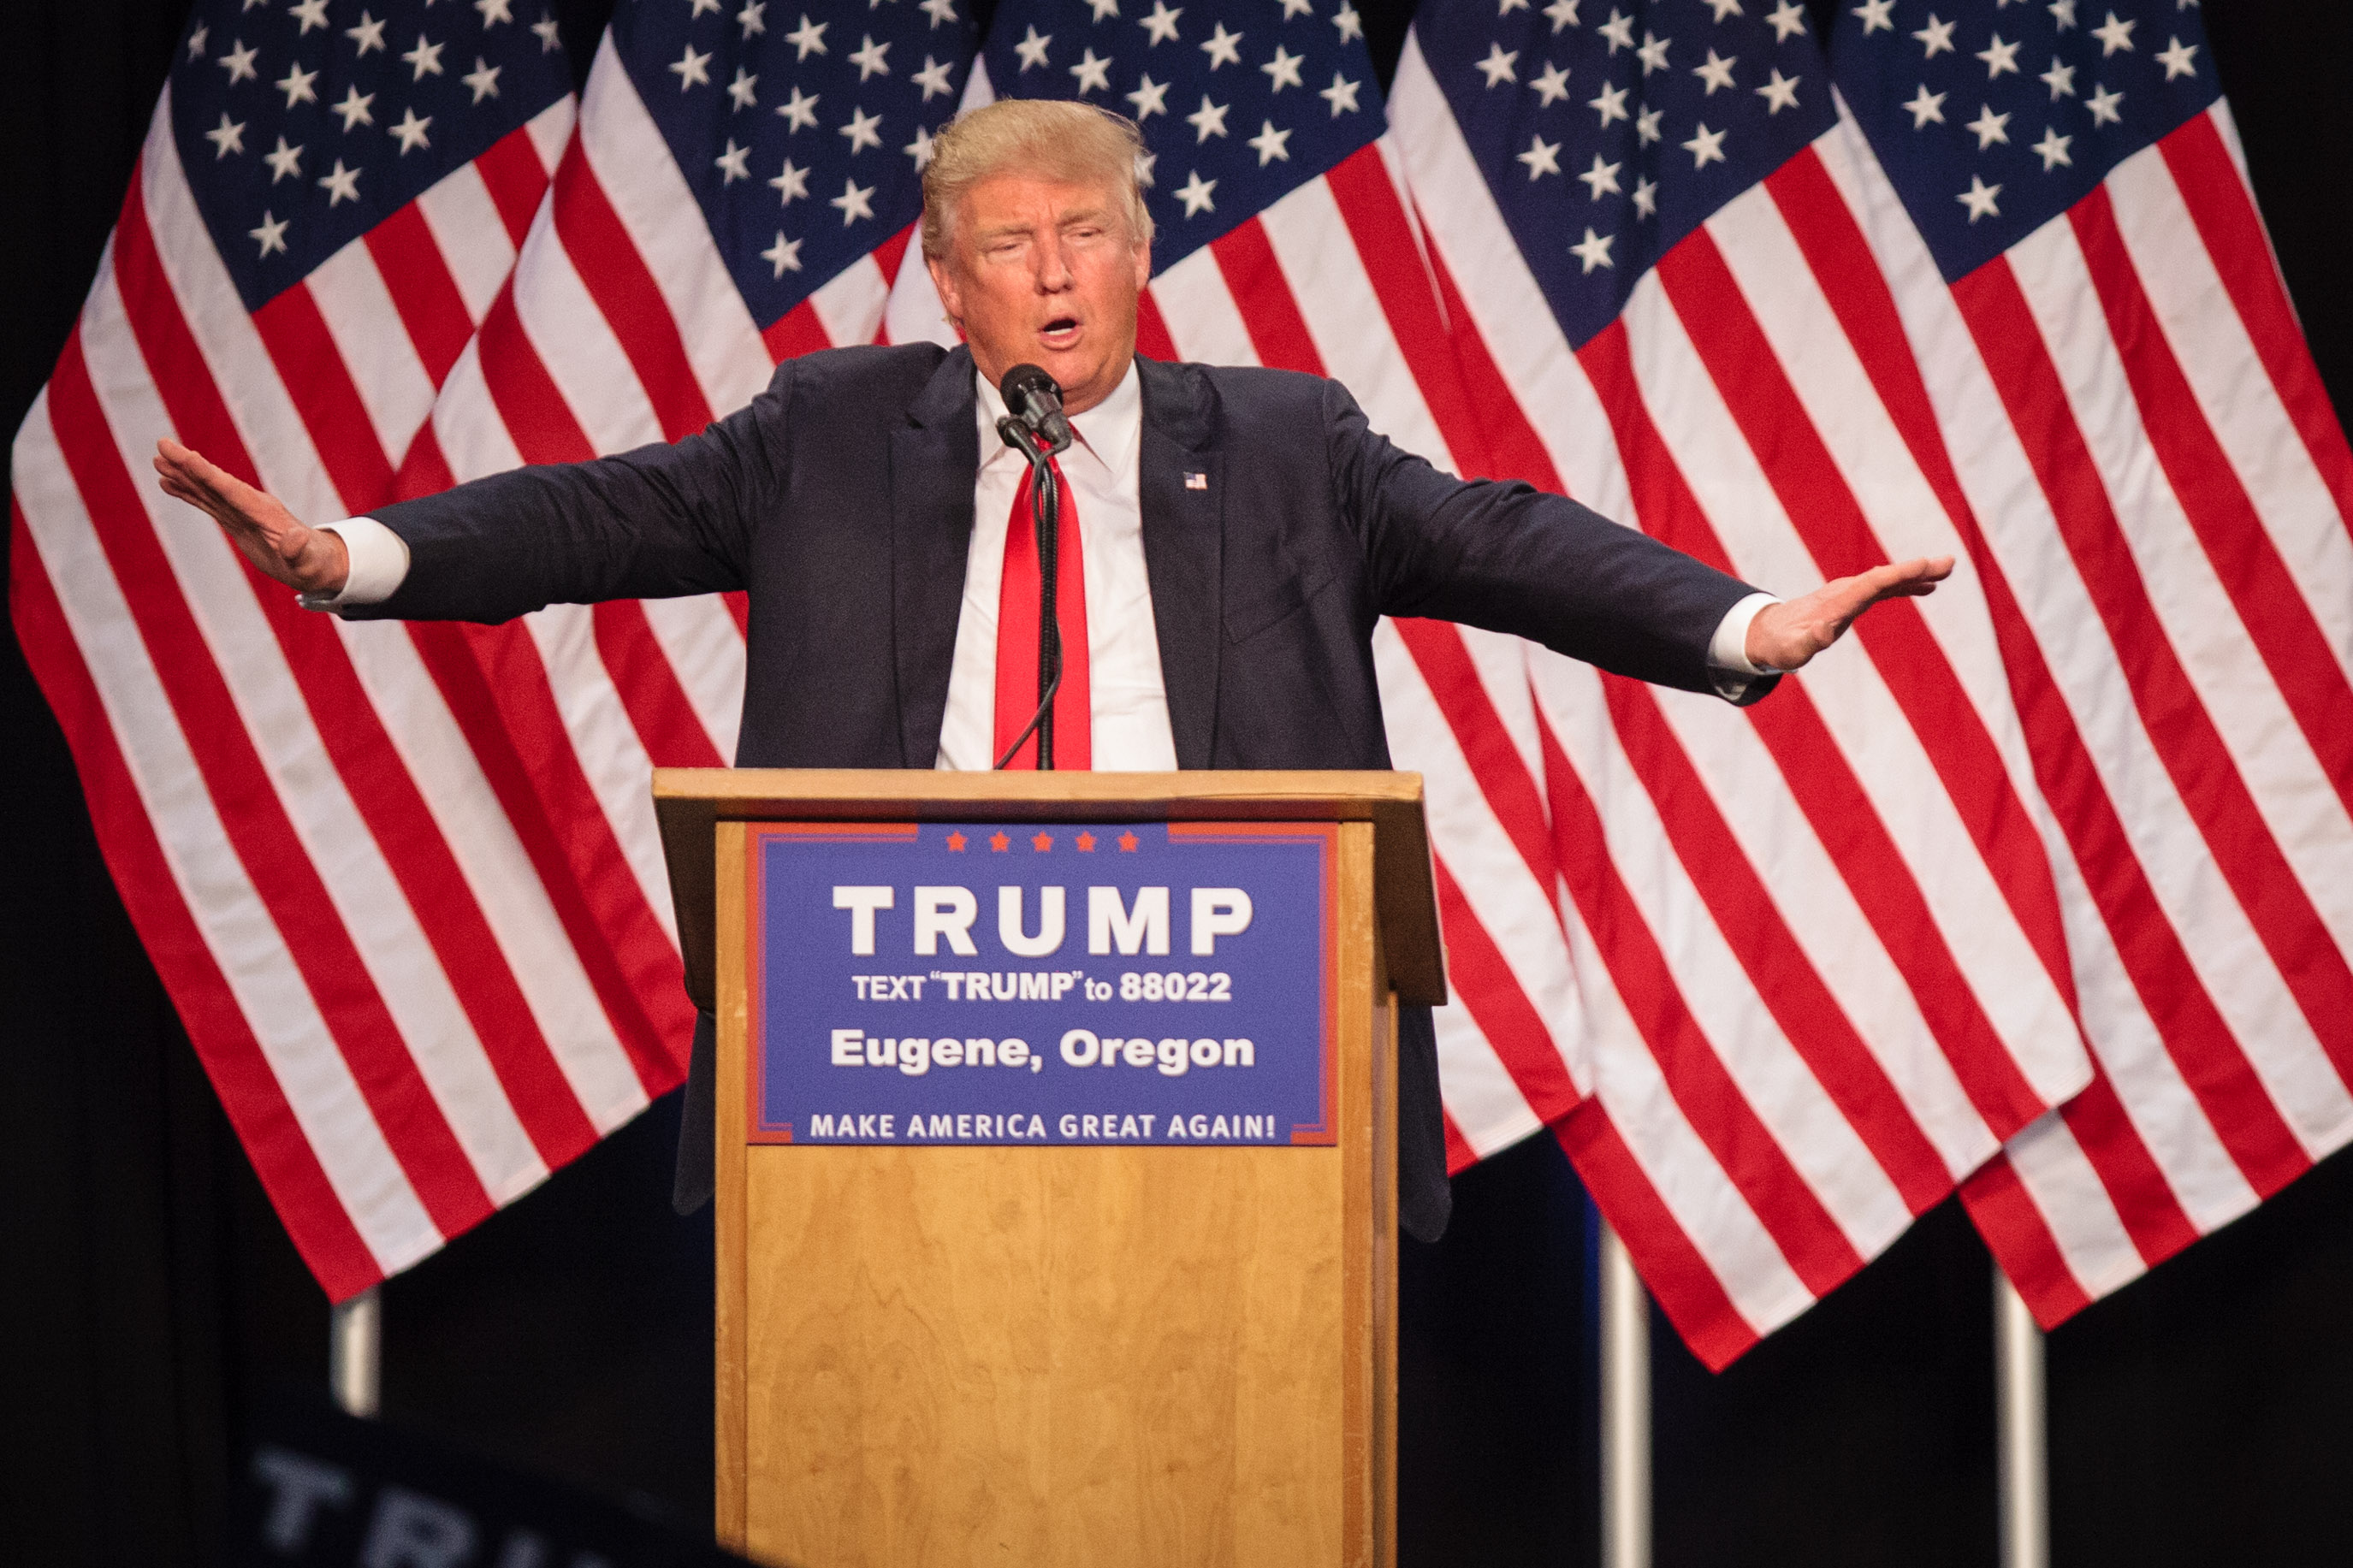 US Republican presidential candidate Donald Trump addresses the audience in Eugene, Oregon on May 6, 2016.